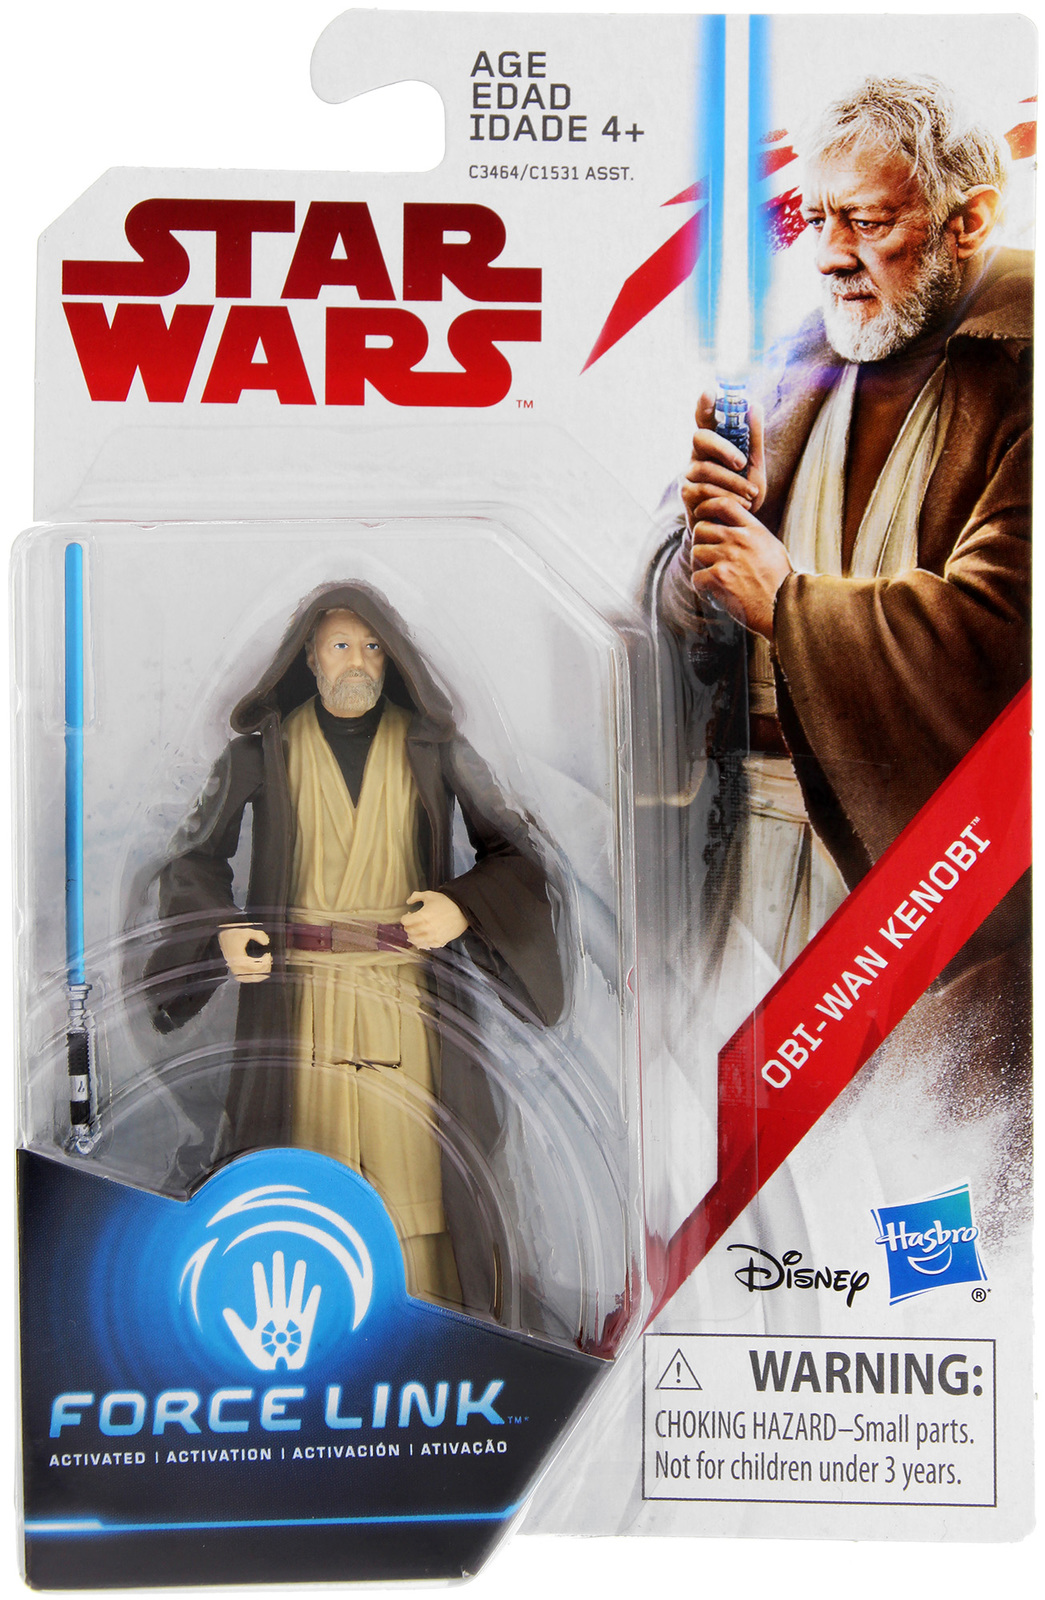 Star Wars: Force Link Figure - Obi-Wan Kenobi image